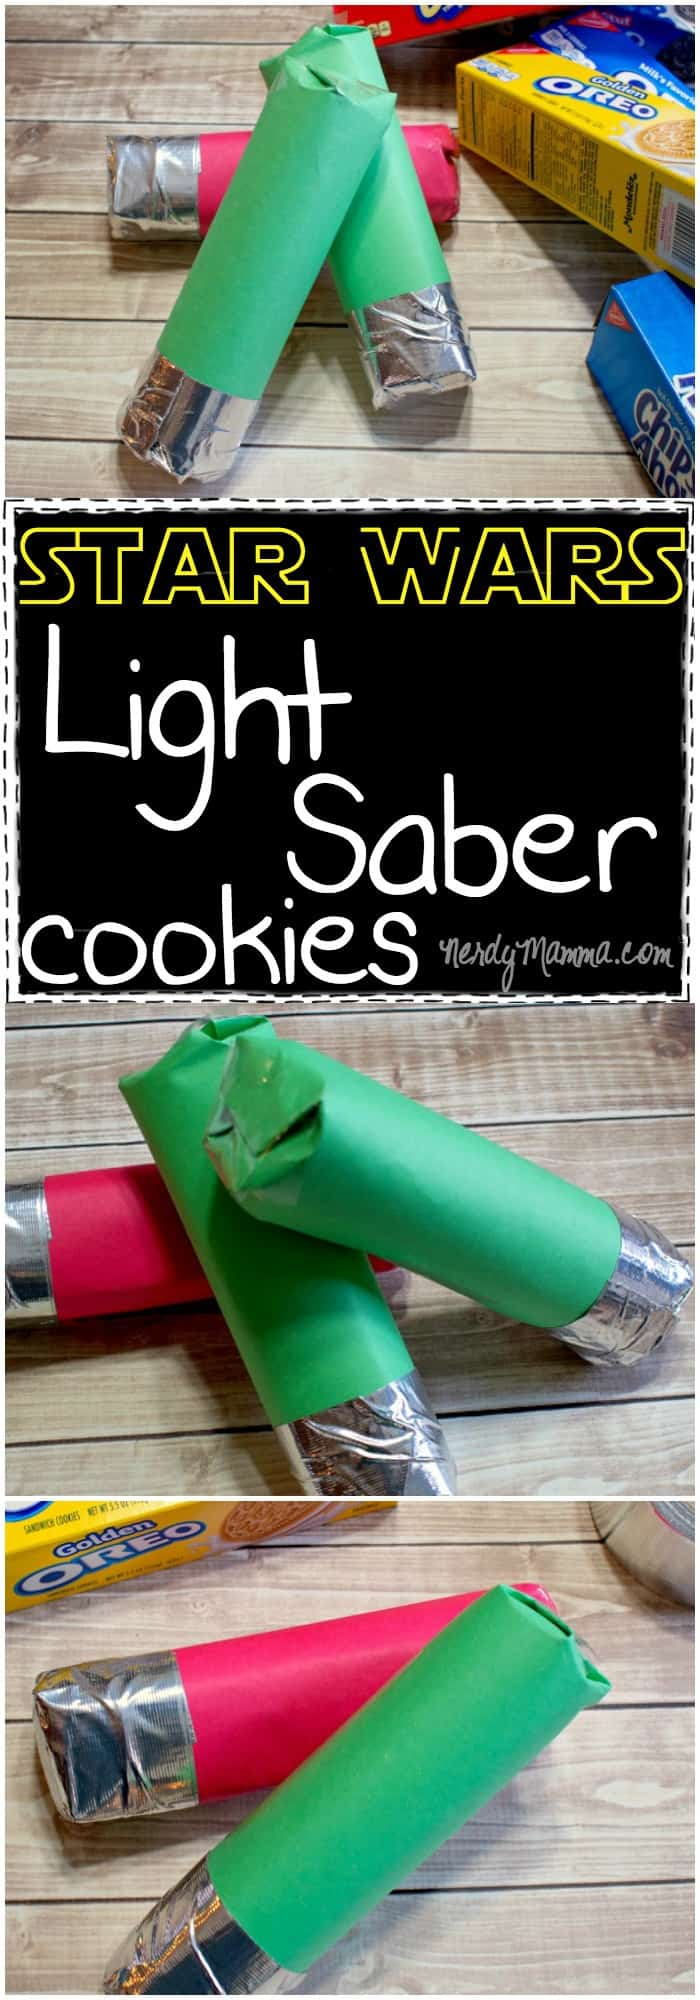 These Light Saber cookies are so cute. Very cool favors for a Star Wars party! LOL!